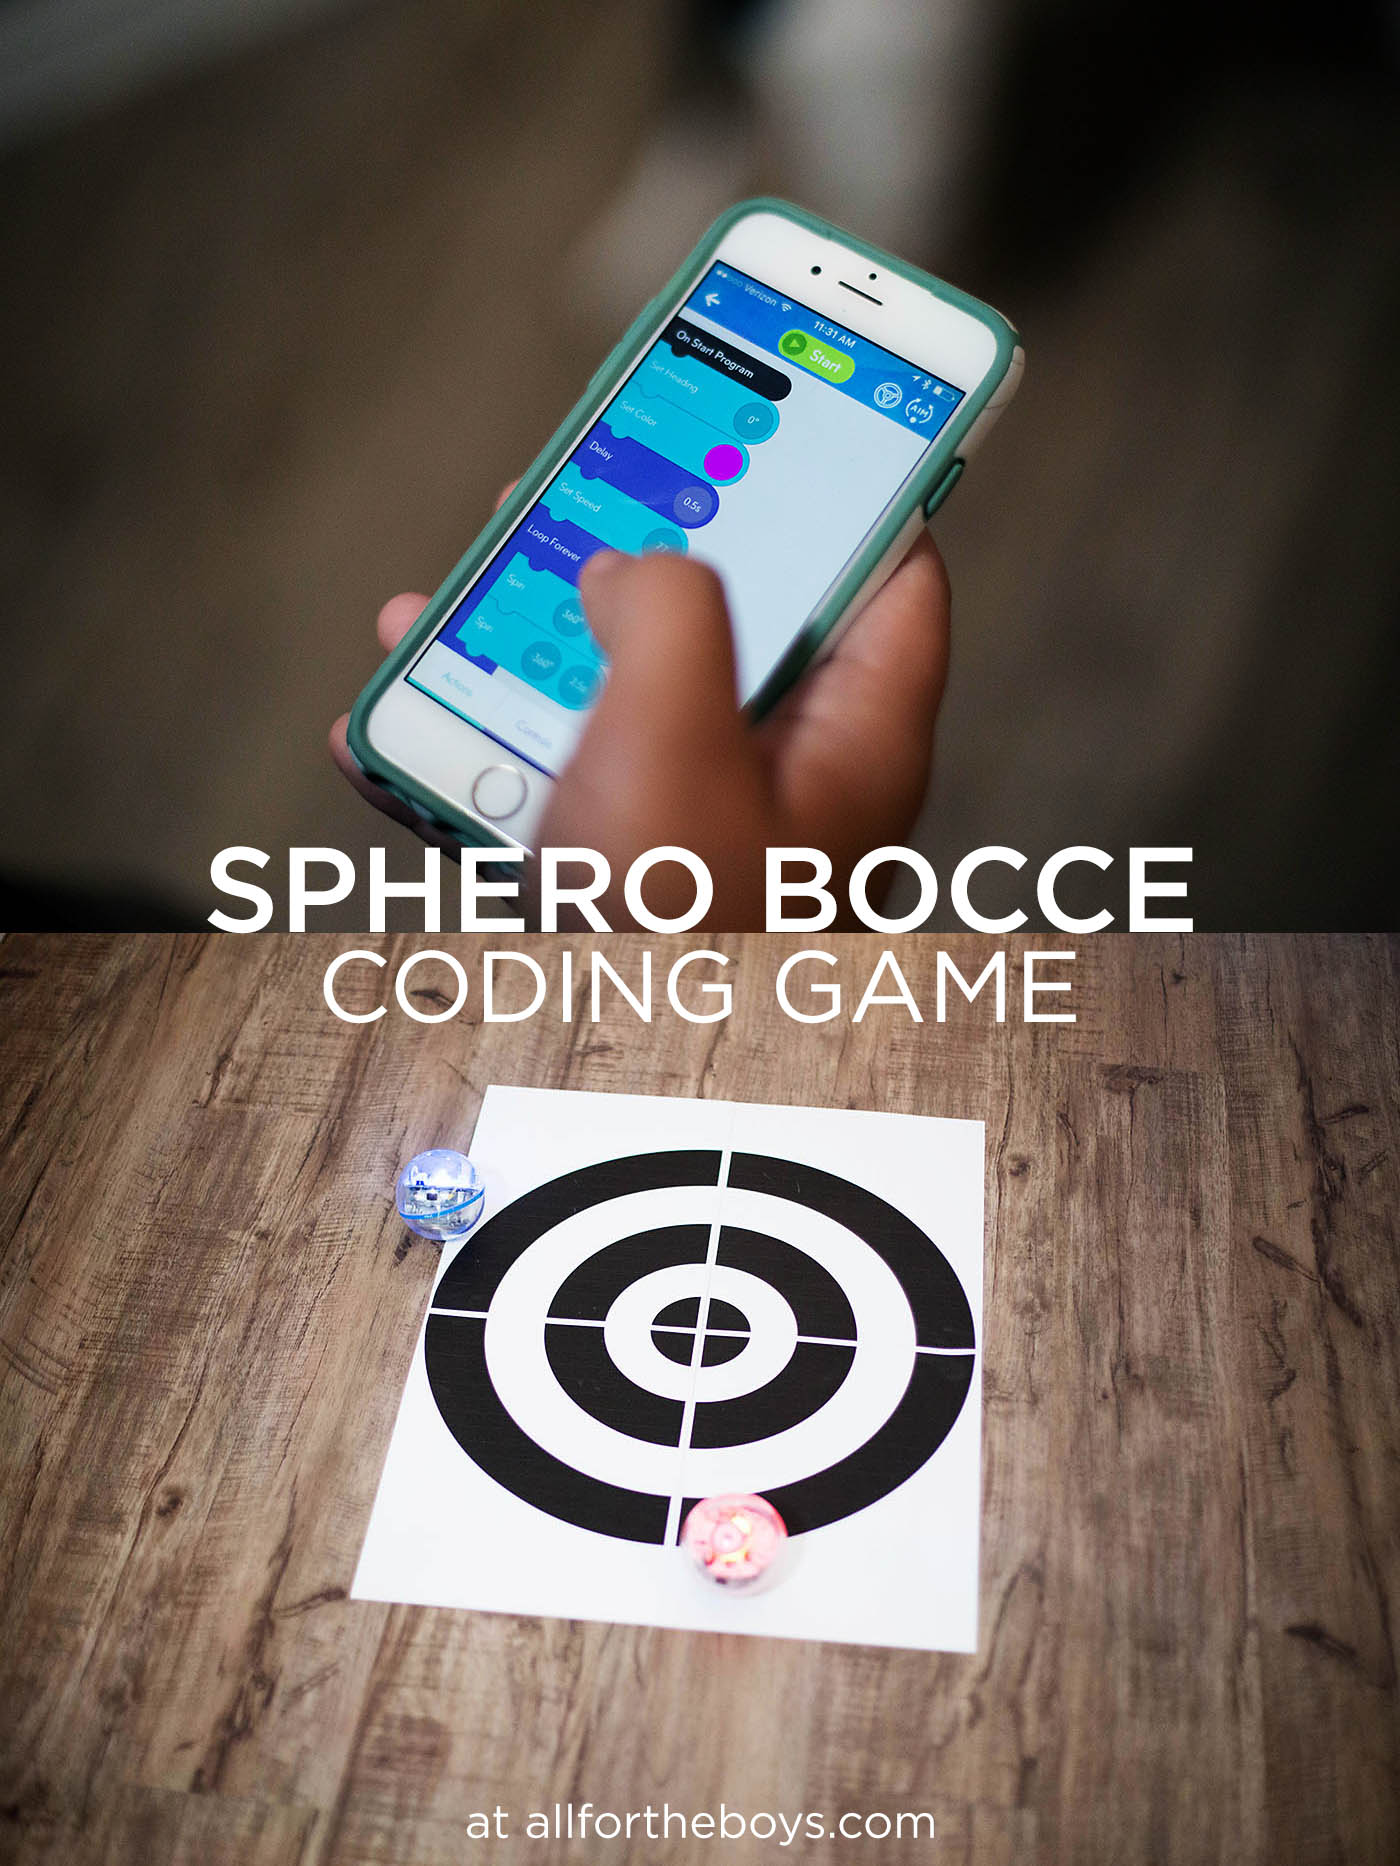 Sphero Bocce Ball coding game!